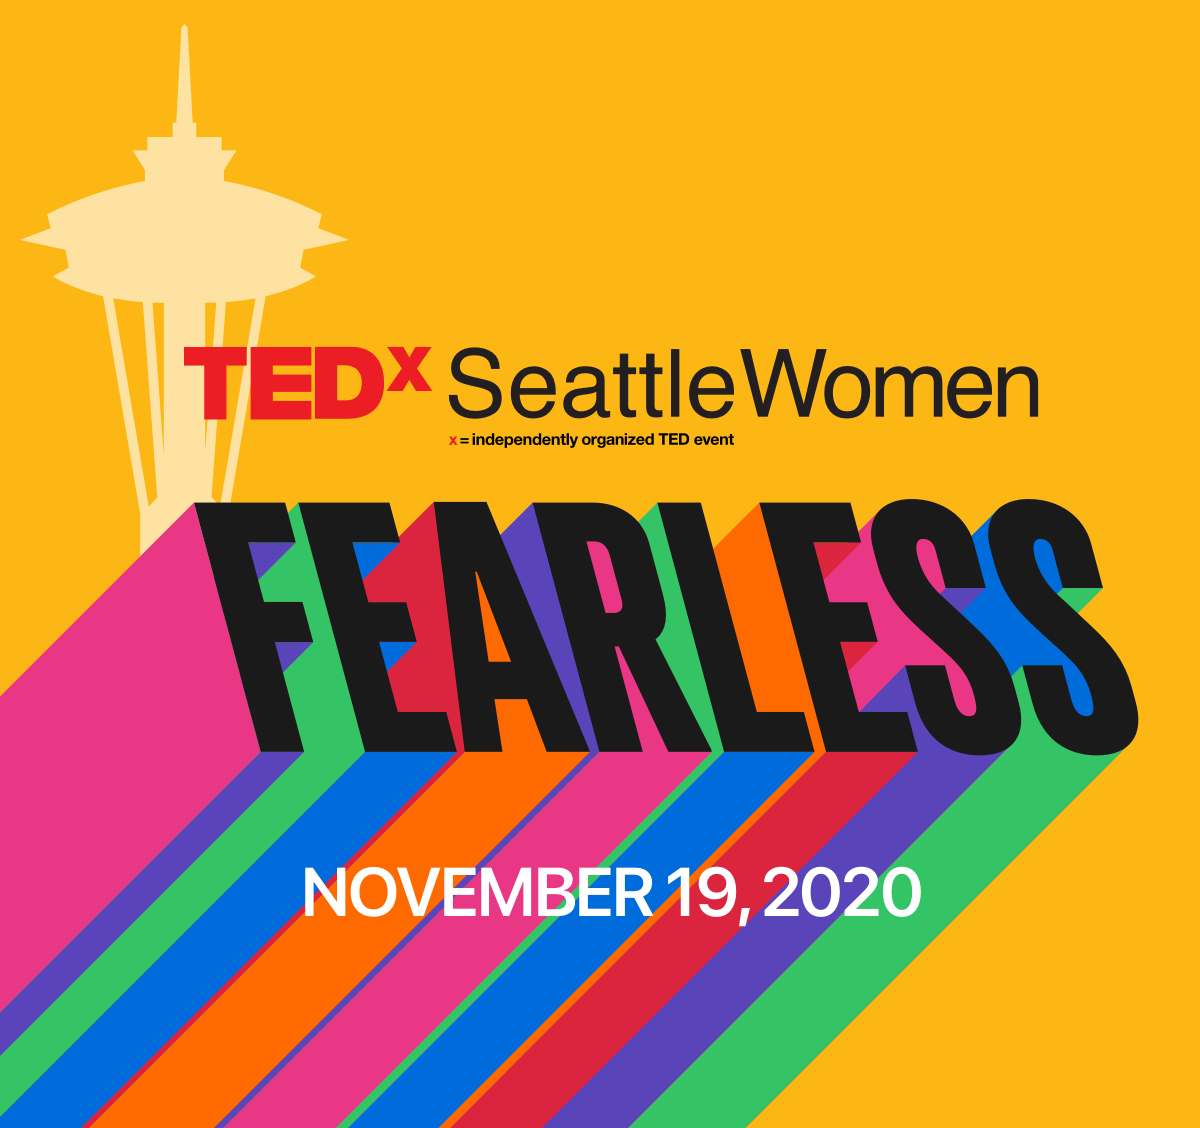 Watch TEDx Seattle Women: Fearless featuring Kathleen Macferran – recorded 11/19/2020